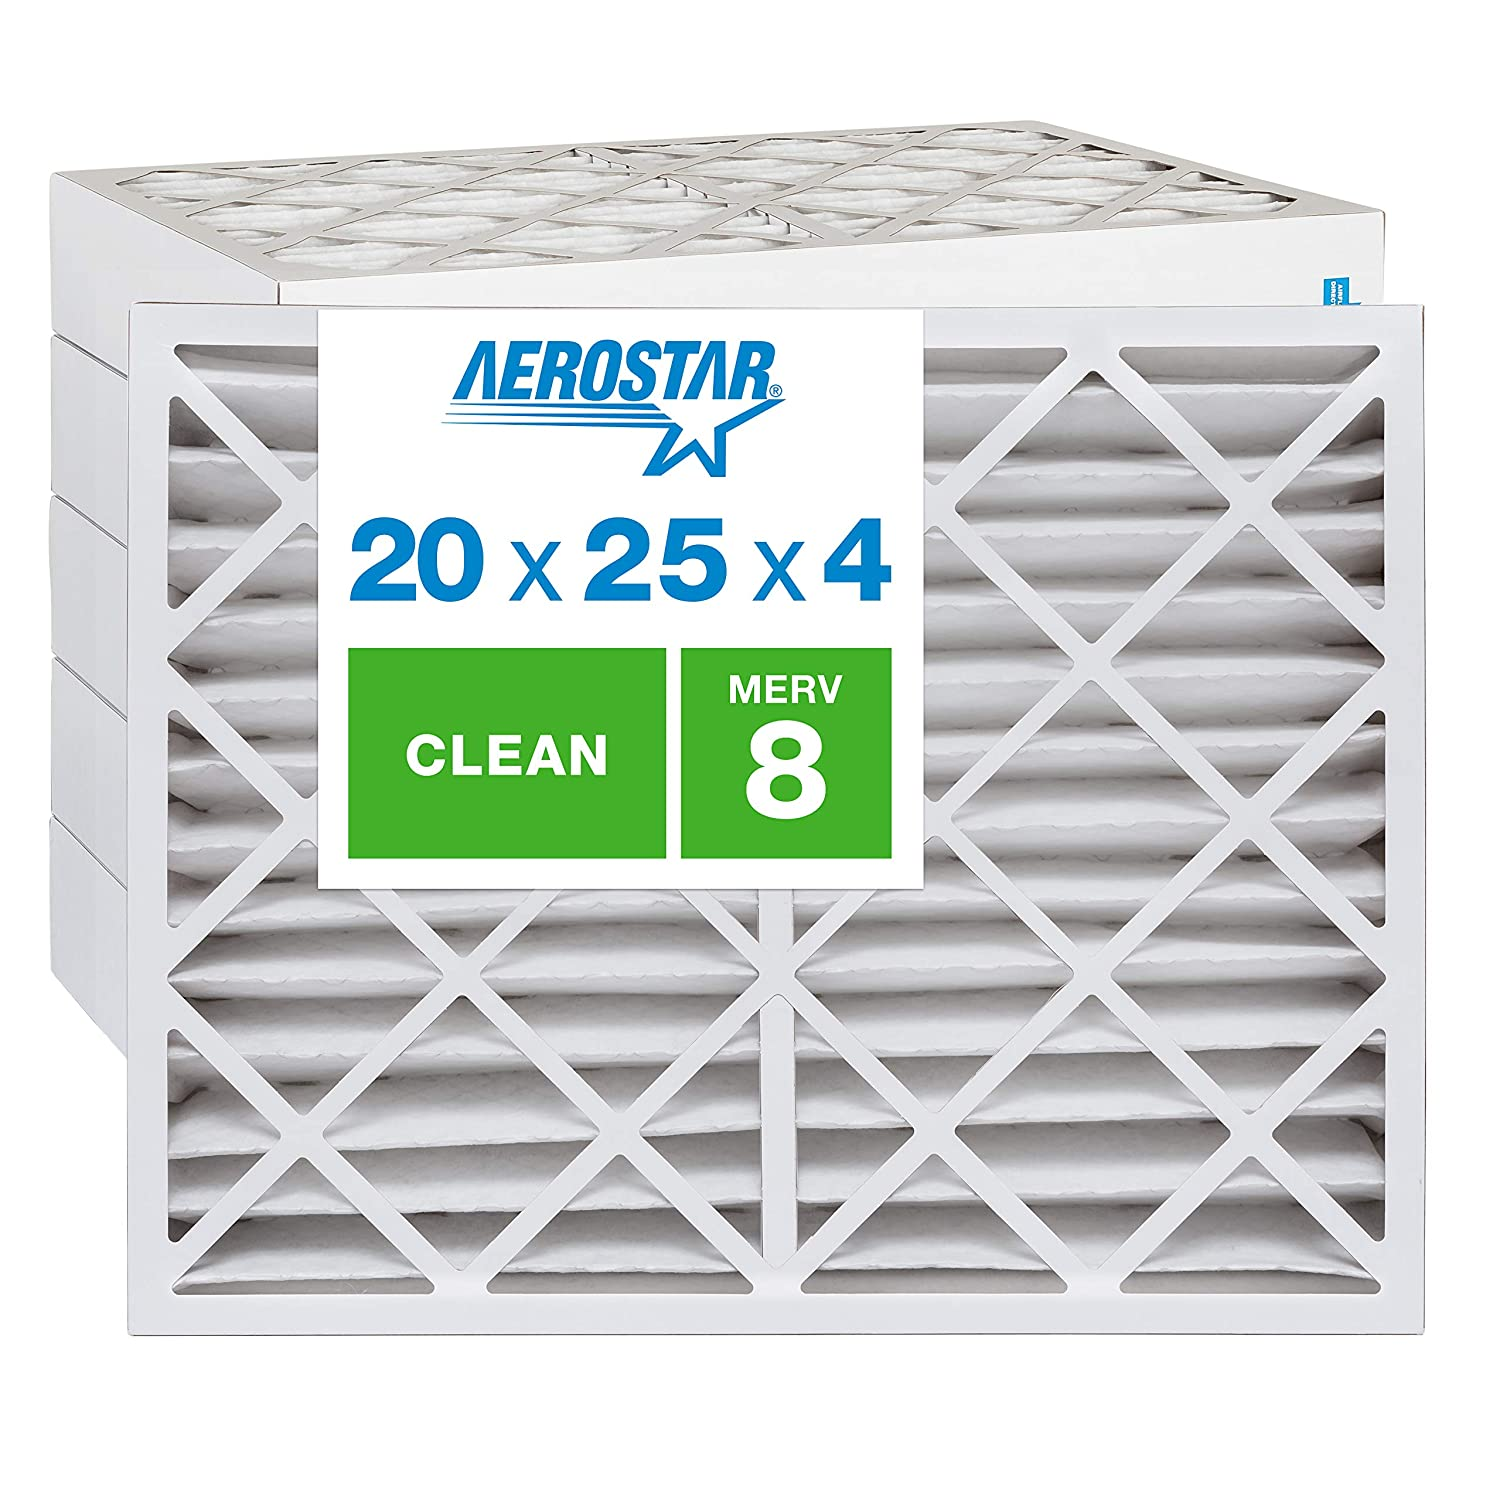 Aerostar Clean House 20x25x4 MERV 8 Pleated Air Filter, Made in the USA, (Actual Size: 19 1/2